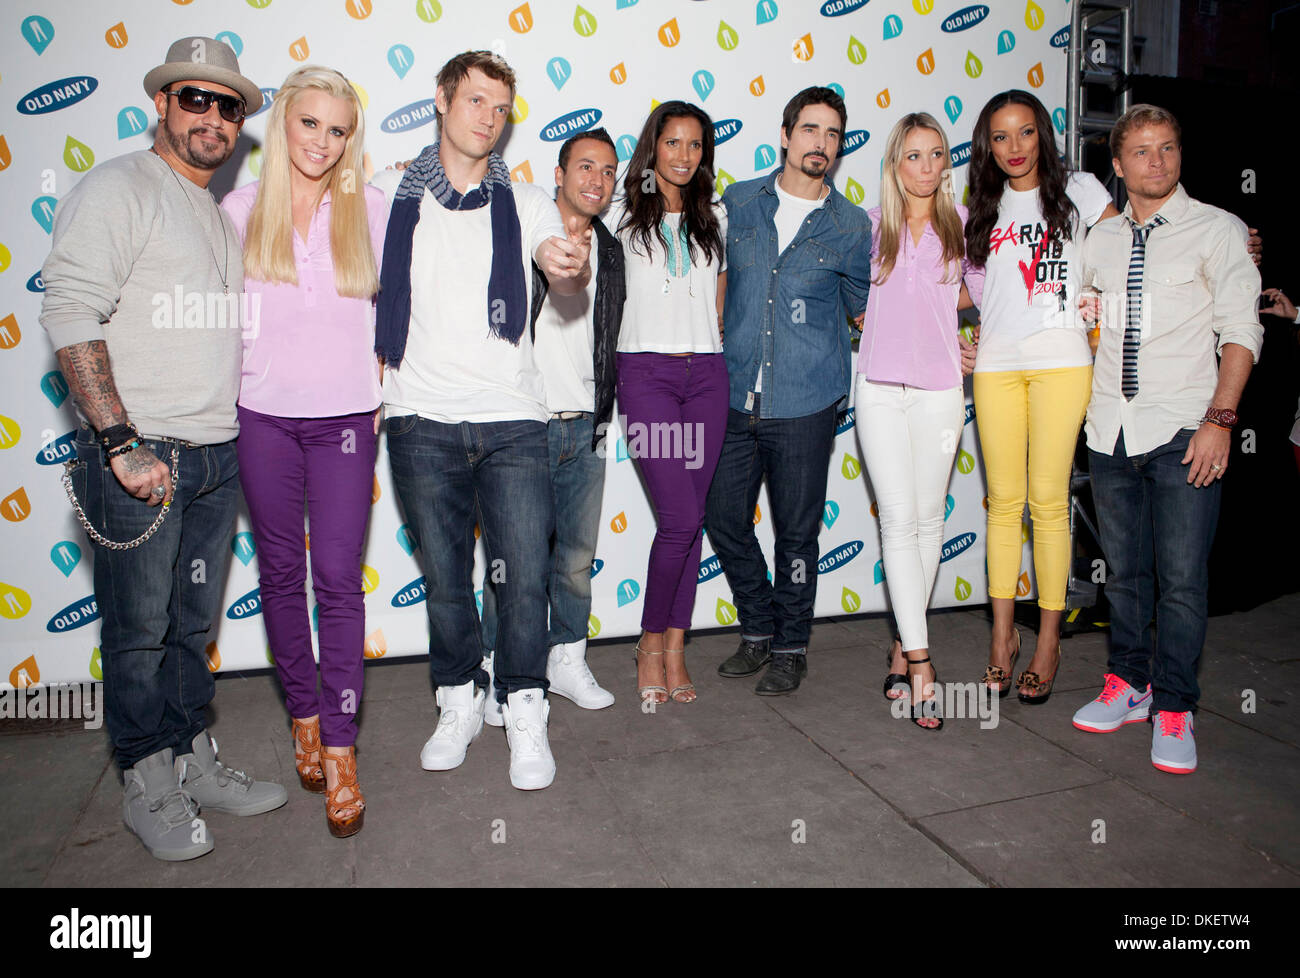 The Backstreet Boys Jenny Mccarthy Katrina Bowden And Selita Ebanks